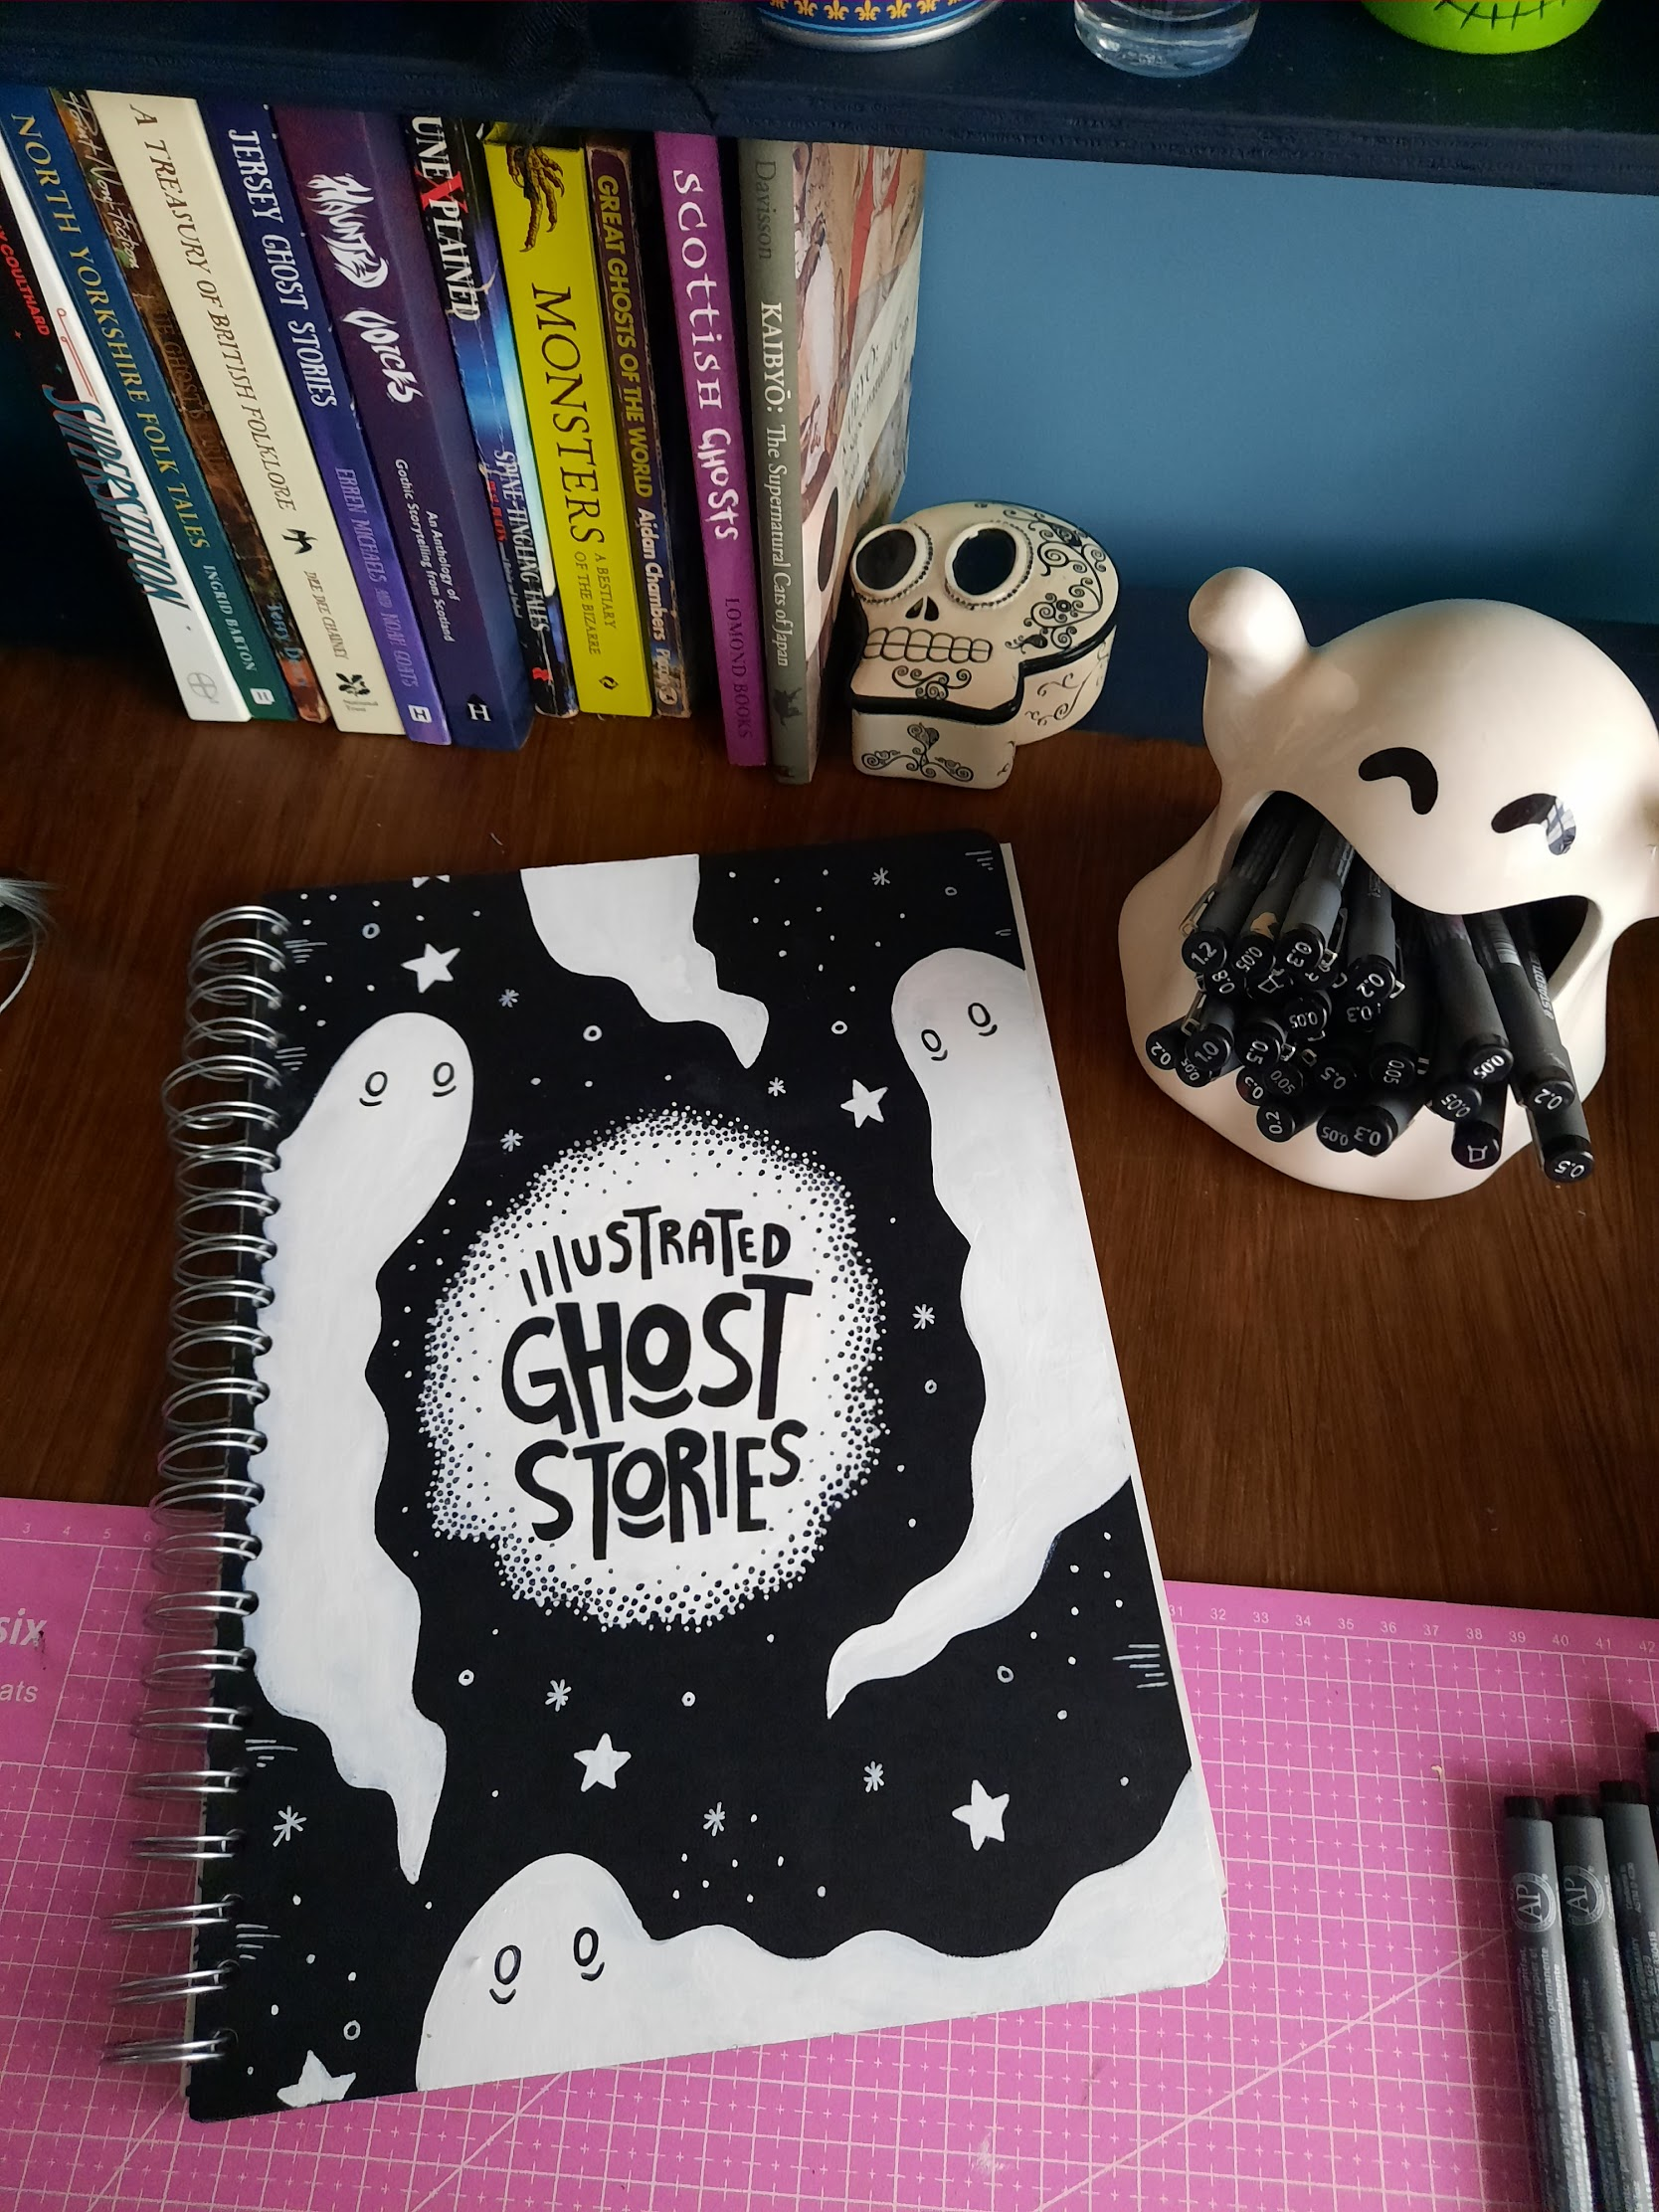 New Project: Illustrated Ghost Stories